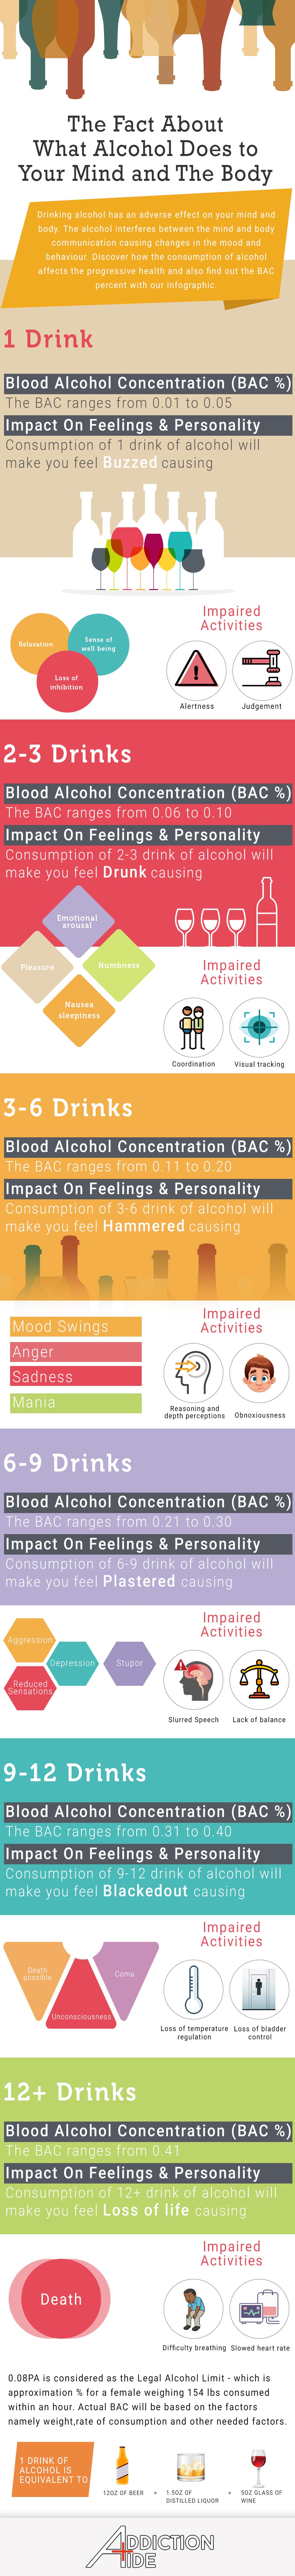 What Alcohol Does to Your Mind and Body